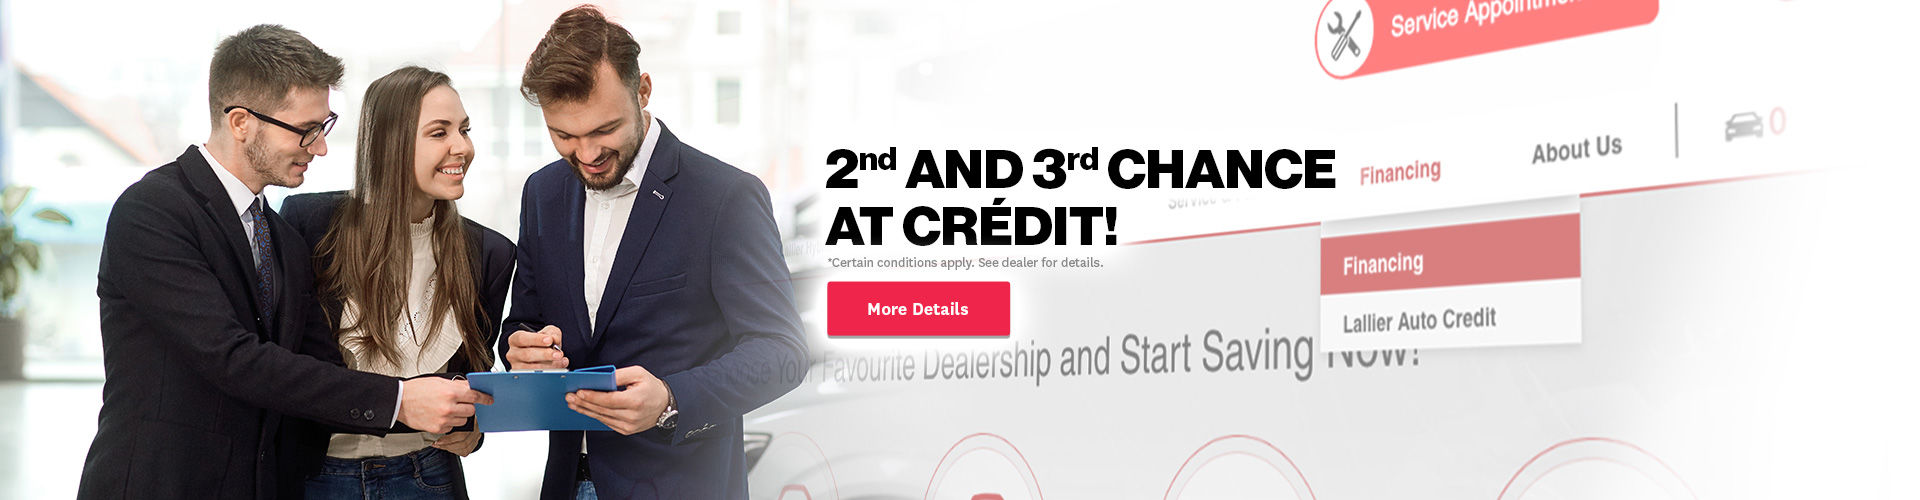 2nd and 3rd chance at credit